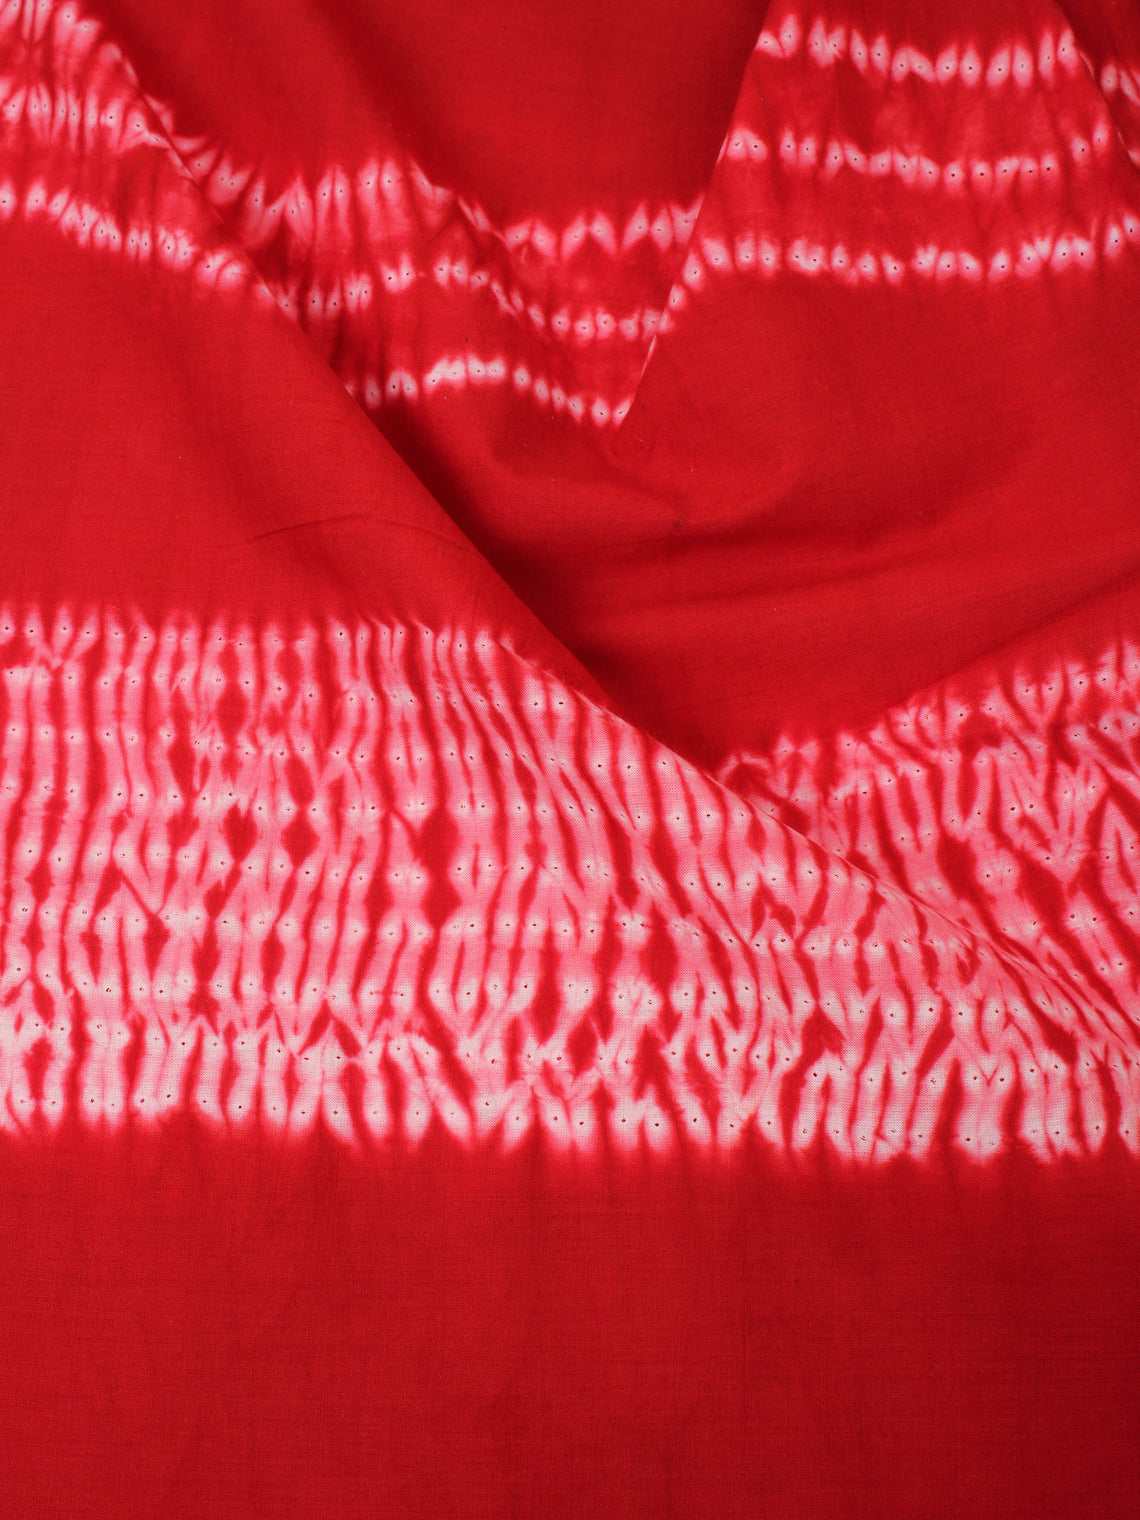 Red Ivory Hand Shibori Dyed Cotton Fabric Per Meter - F0916275